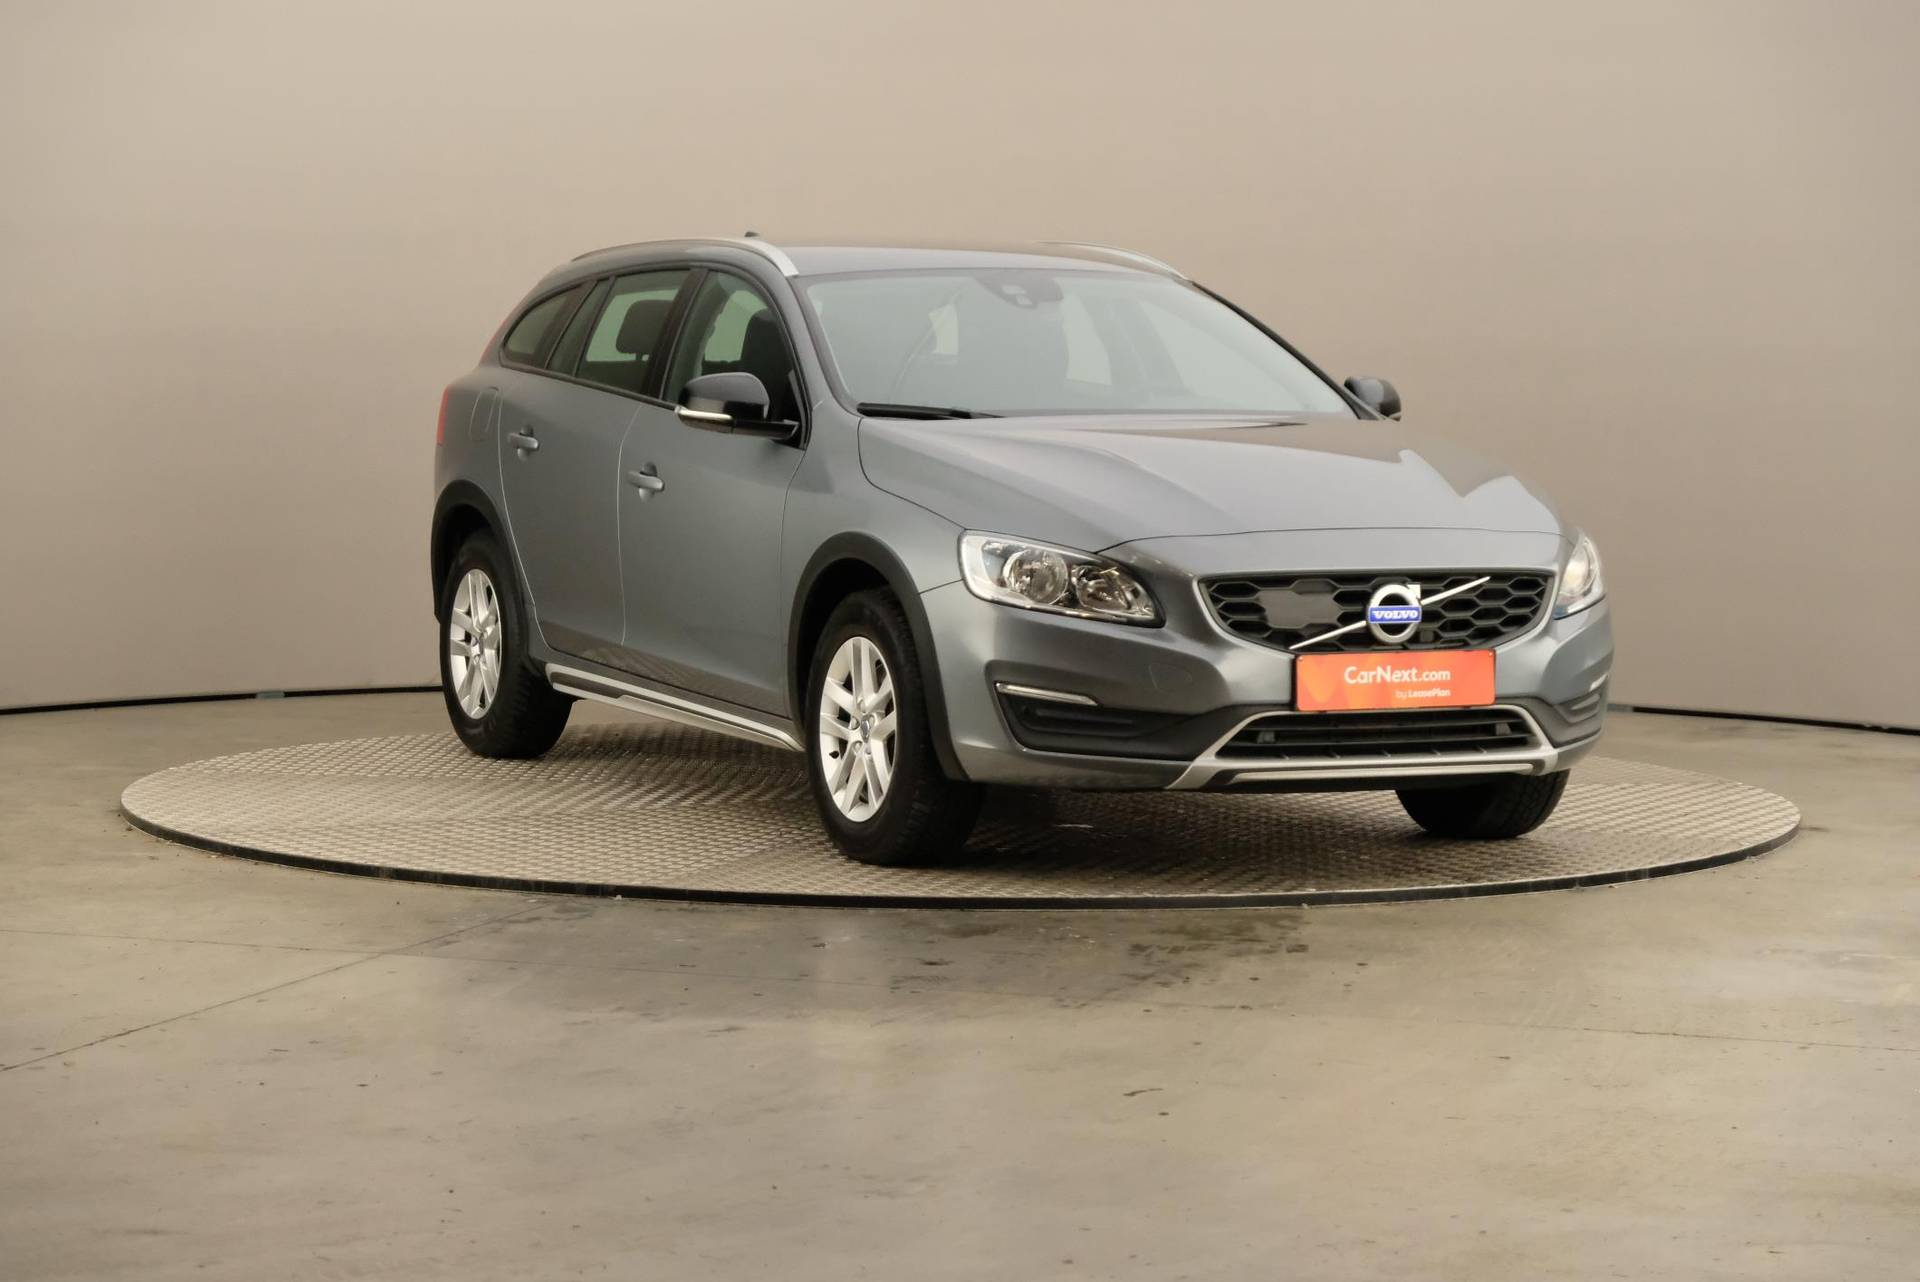 Volvo V60 2.0 D3 Kinetic Geartronic GPS PDC CRUISE CONTROL, 360-image29